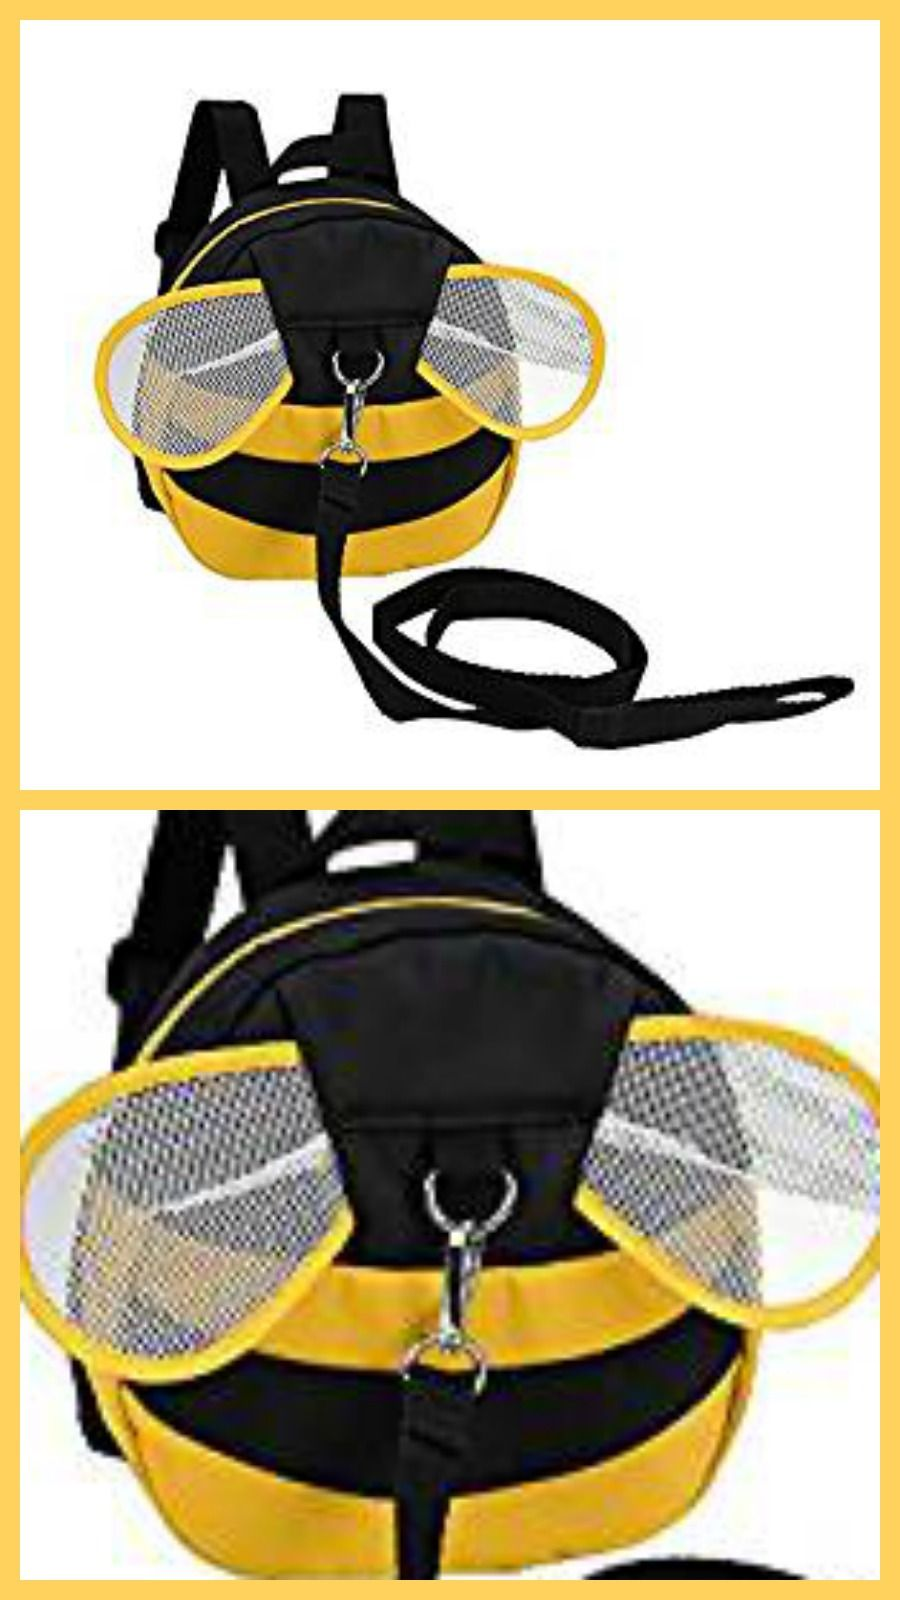 Zicac Baby Toddler Cute Bee Walking Safety Harness